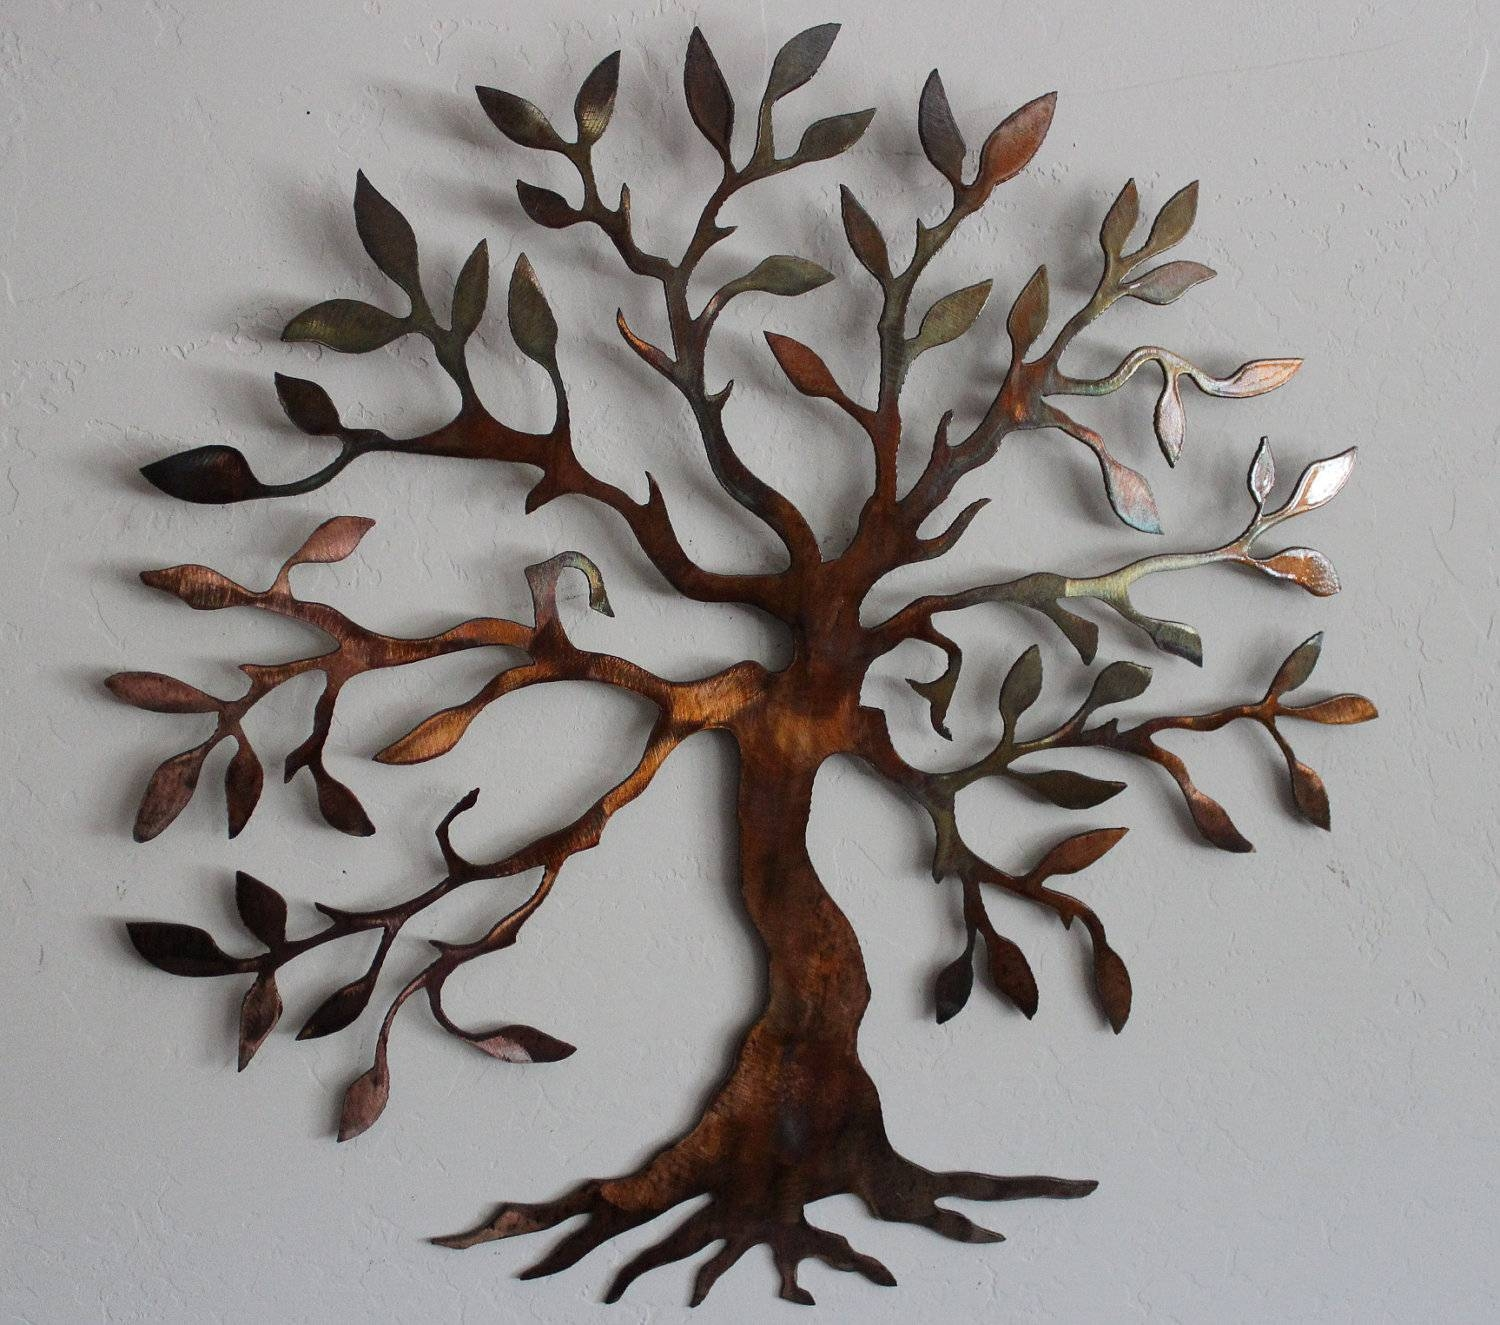 Charming Tree Metal Wall Art Decor Sculpture Design~ Popular Home Inside Best And Newest Metal Wall Art Tree (View 6 of 20)